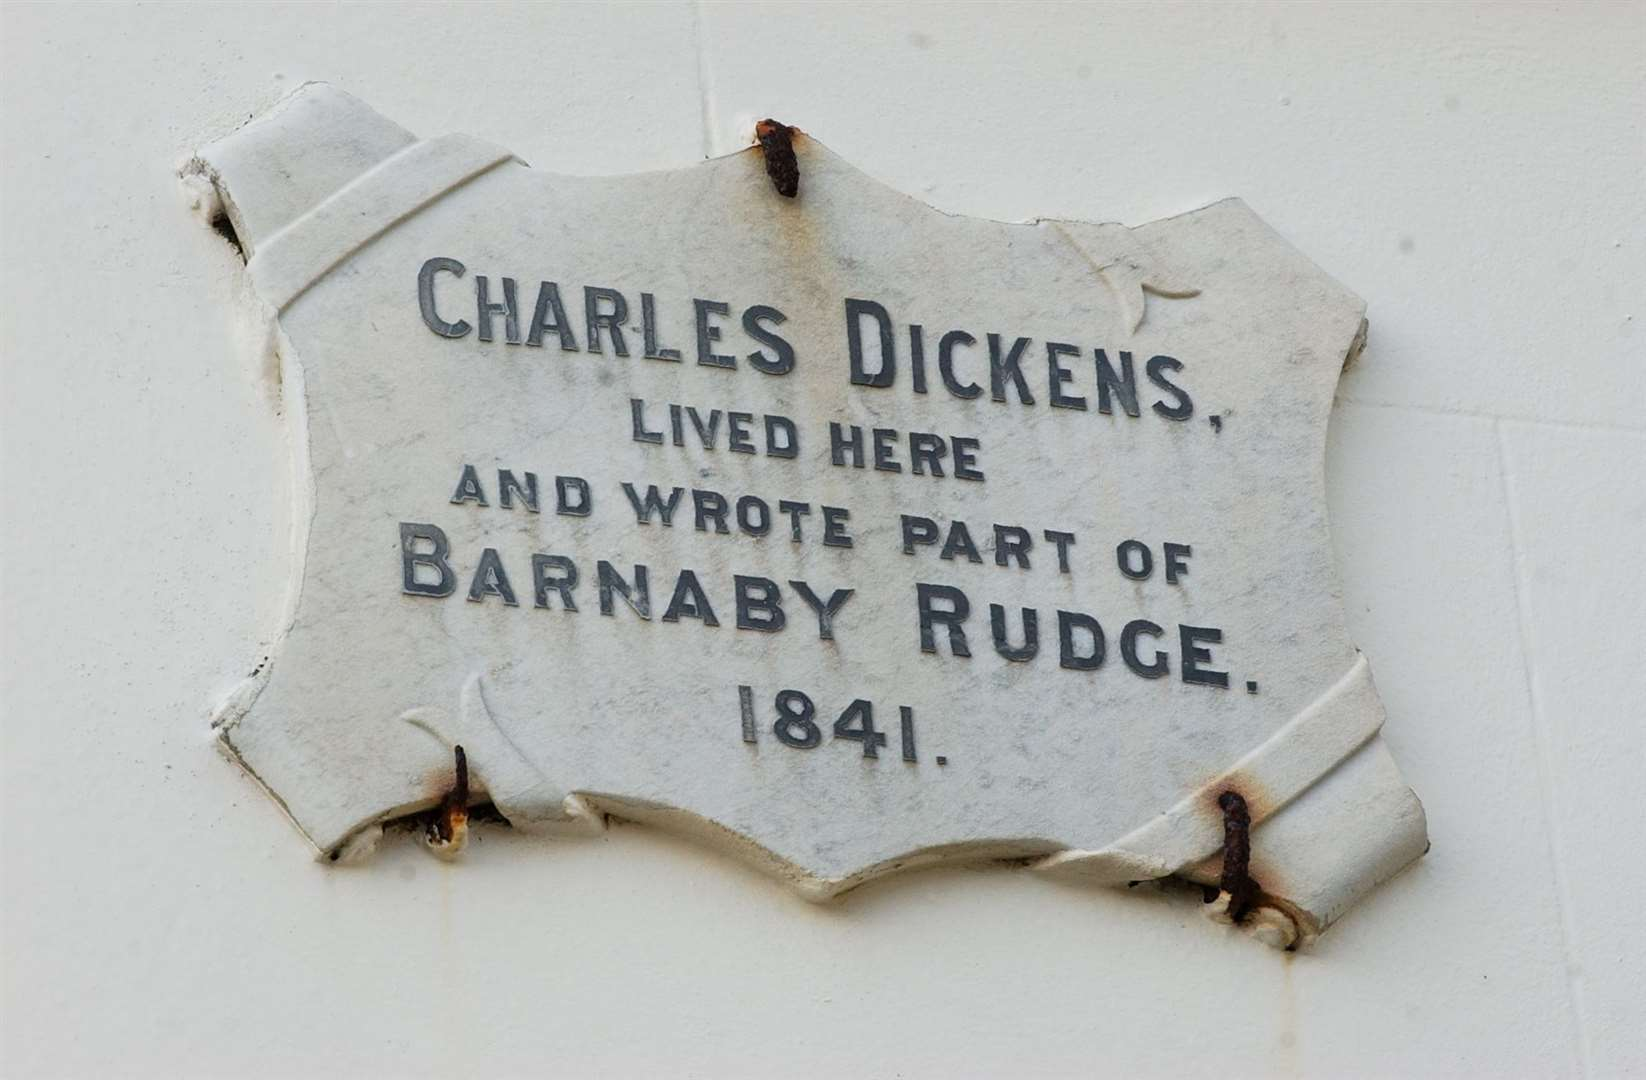 The author stayed in Archway House in Broadstairs and wrote part of Barnaby Rudge in 1841 - a book for which his pet raven was an inspiration